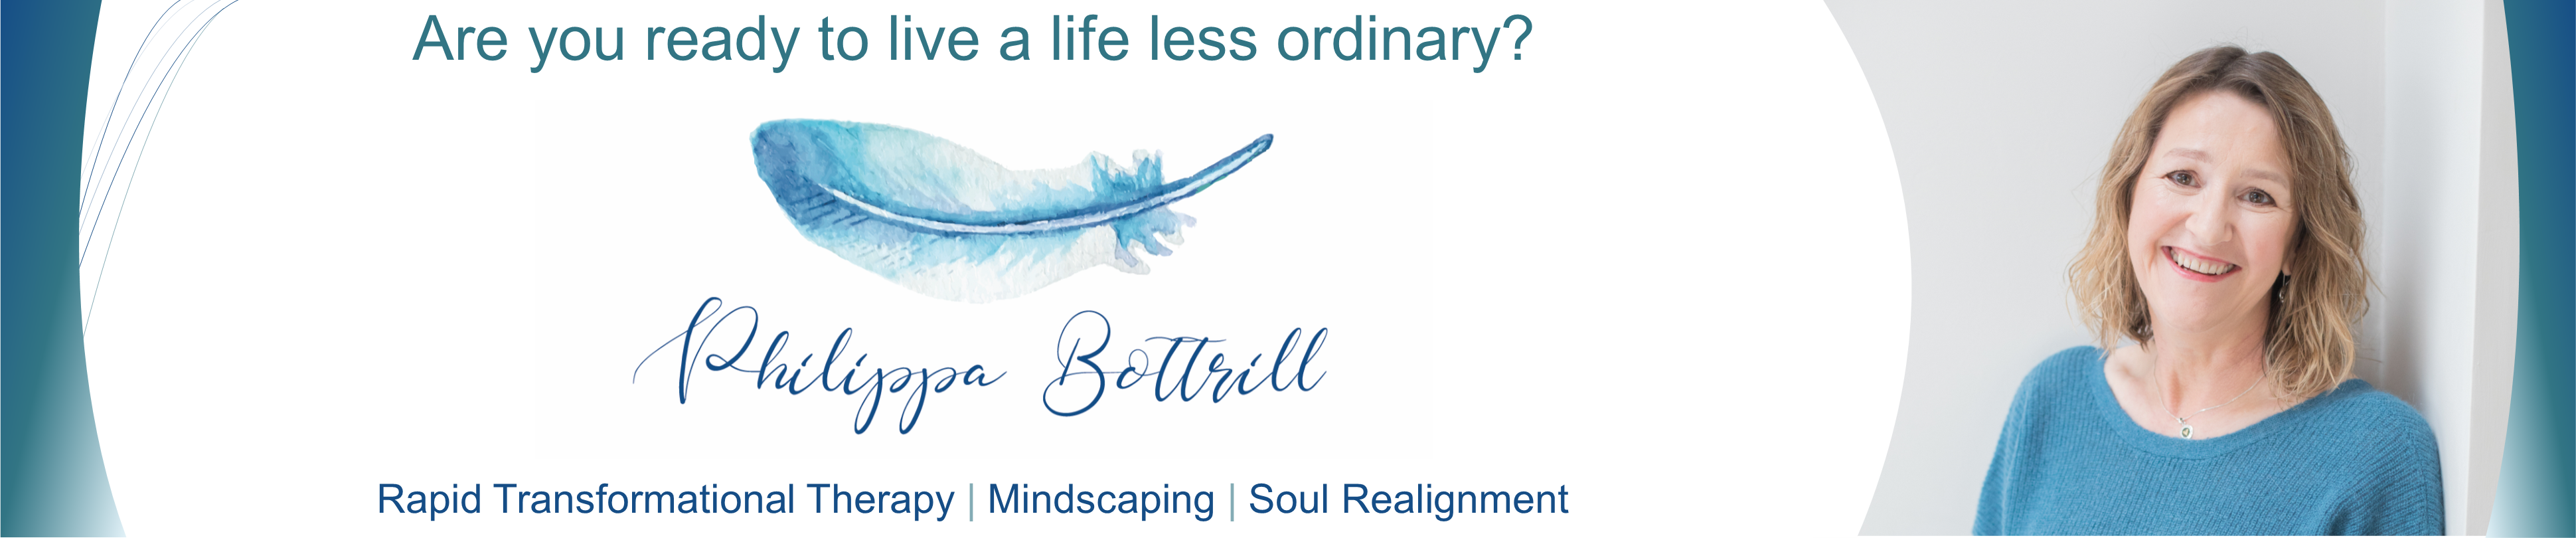 Welcome to Rapid Transformational Therapy with Philippa Bottrill